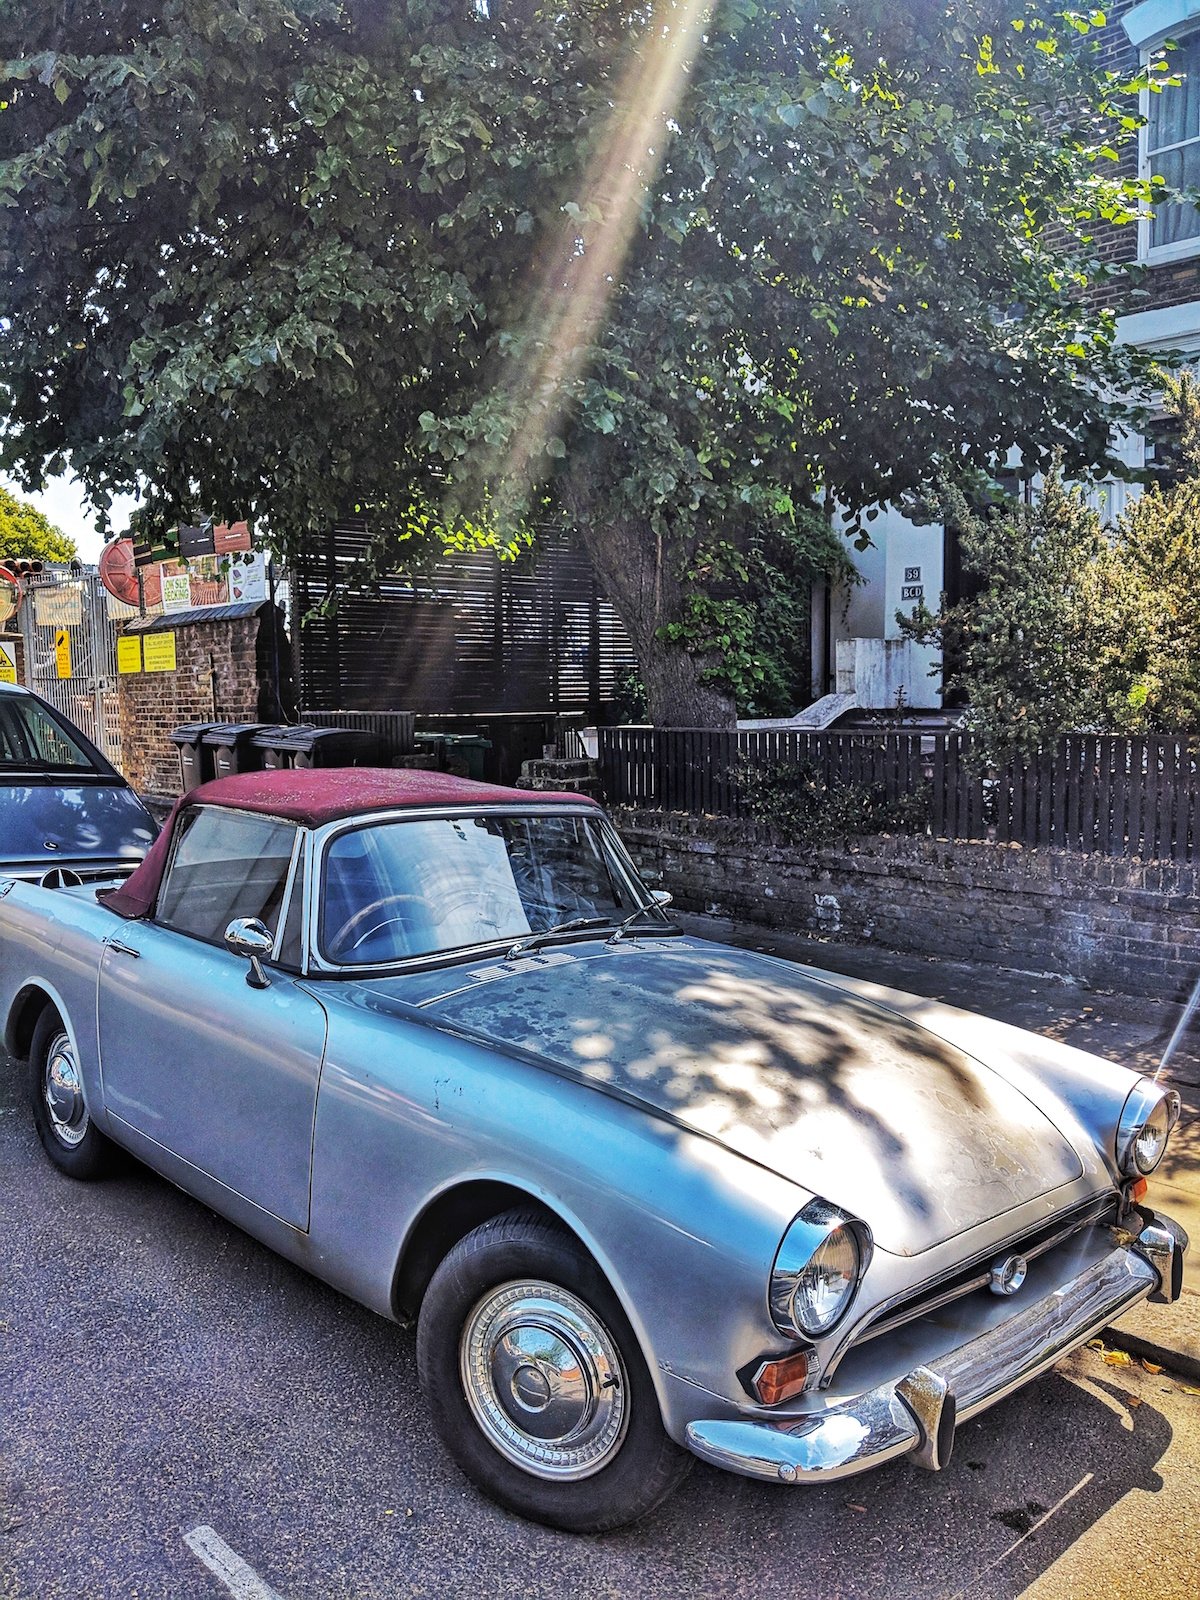 Vintage car in Kentish Town